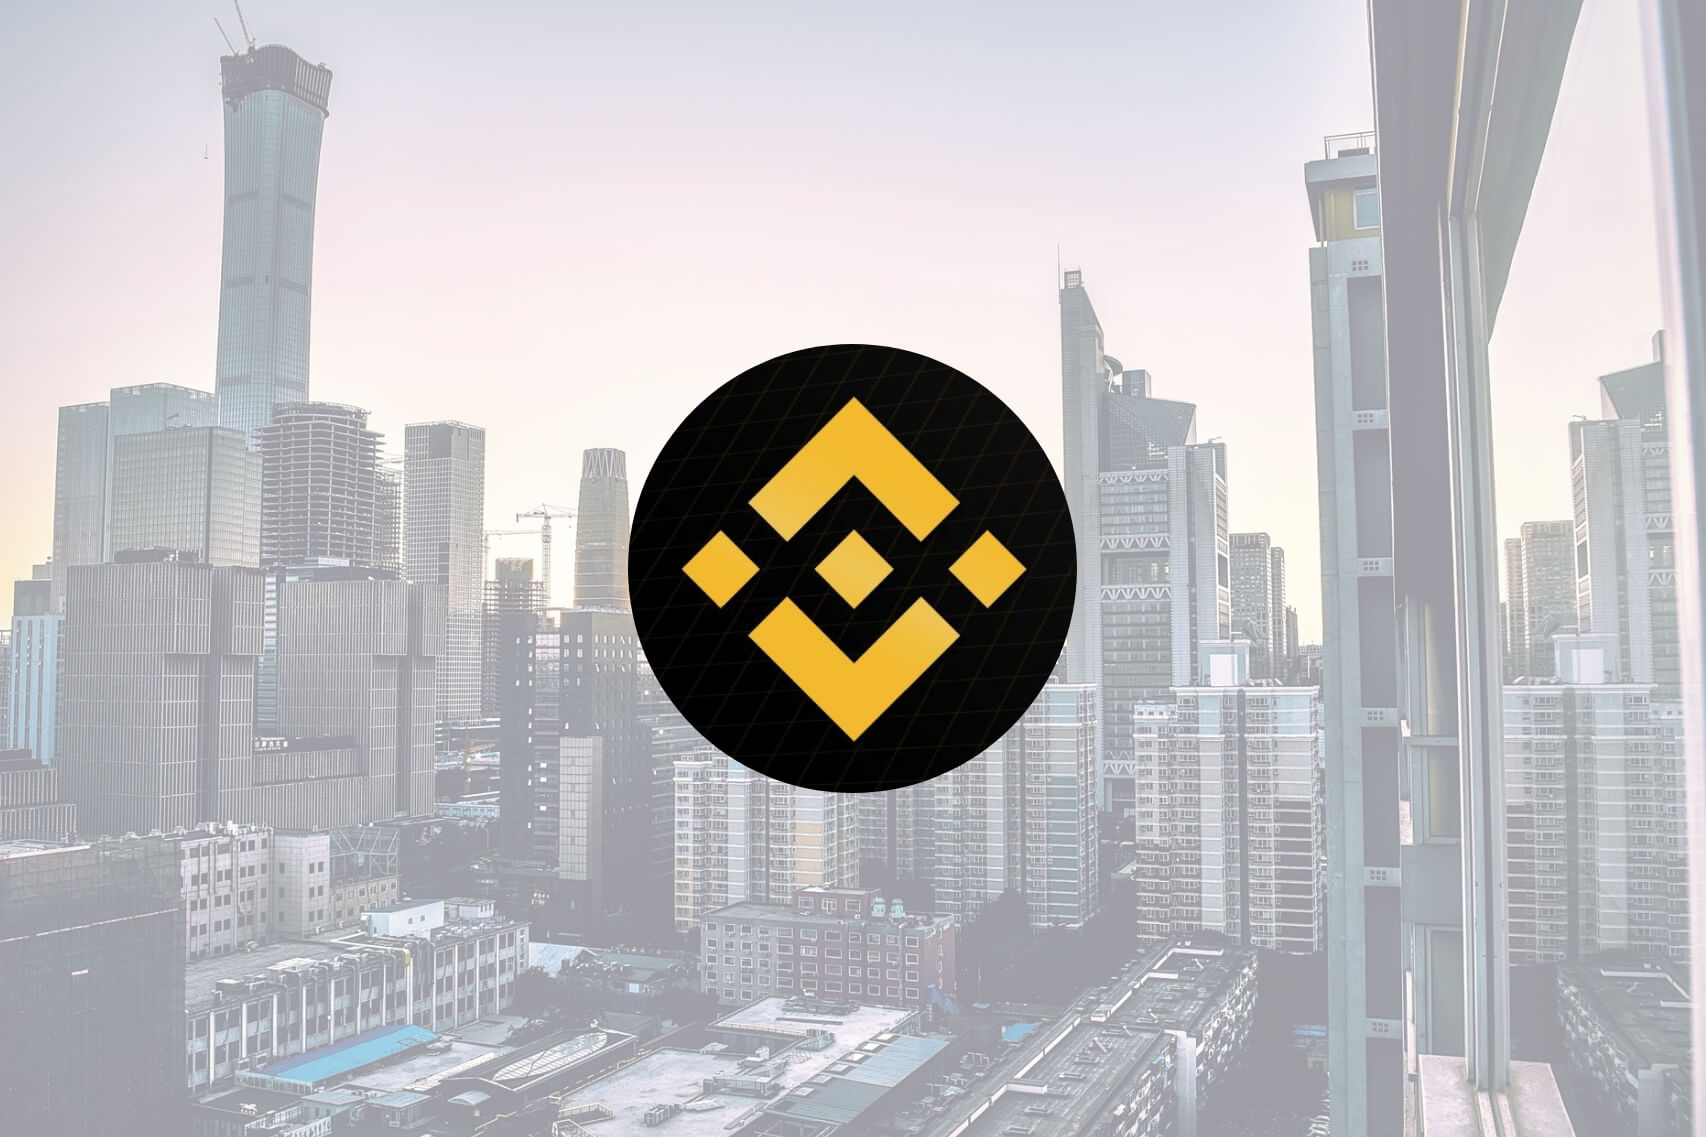 bnb_moves_away_ethereum